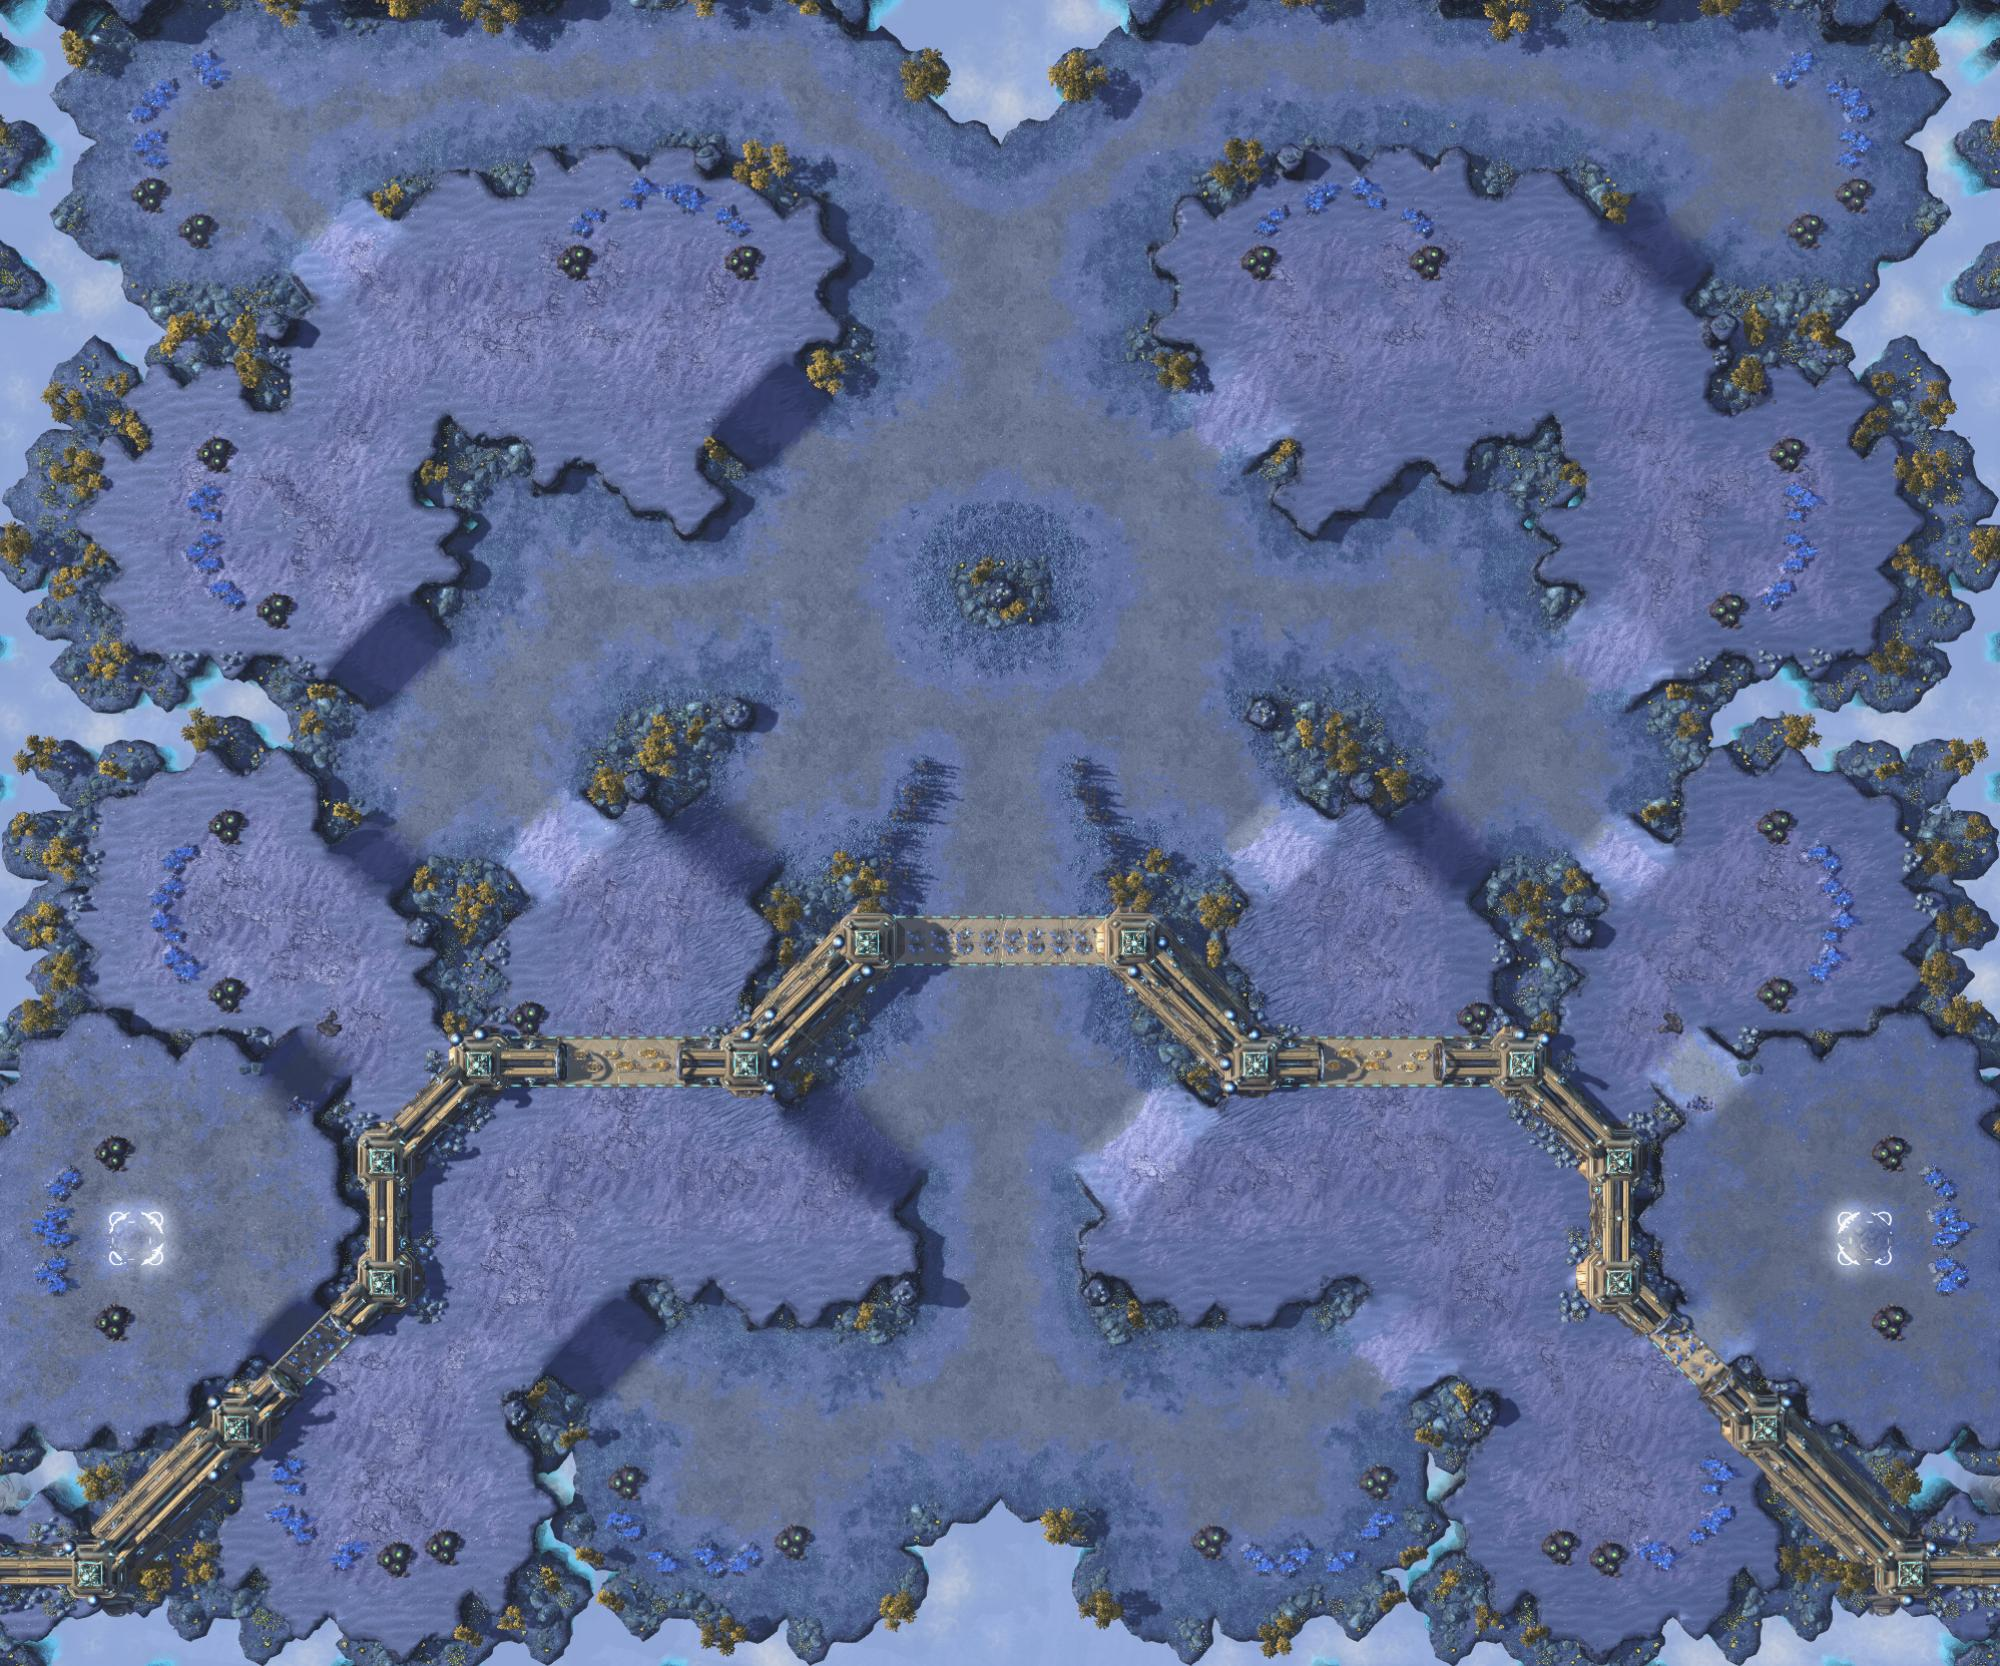 Golden Wall - Pros, GMs and twitchchatGMs of reddit! Please review our future ladder maps!